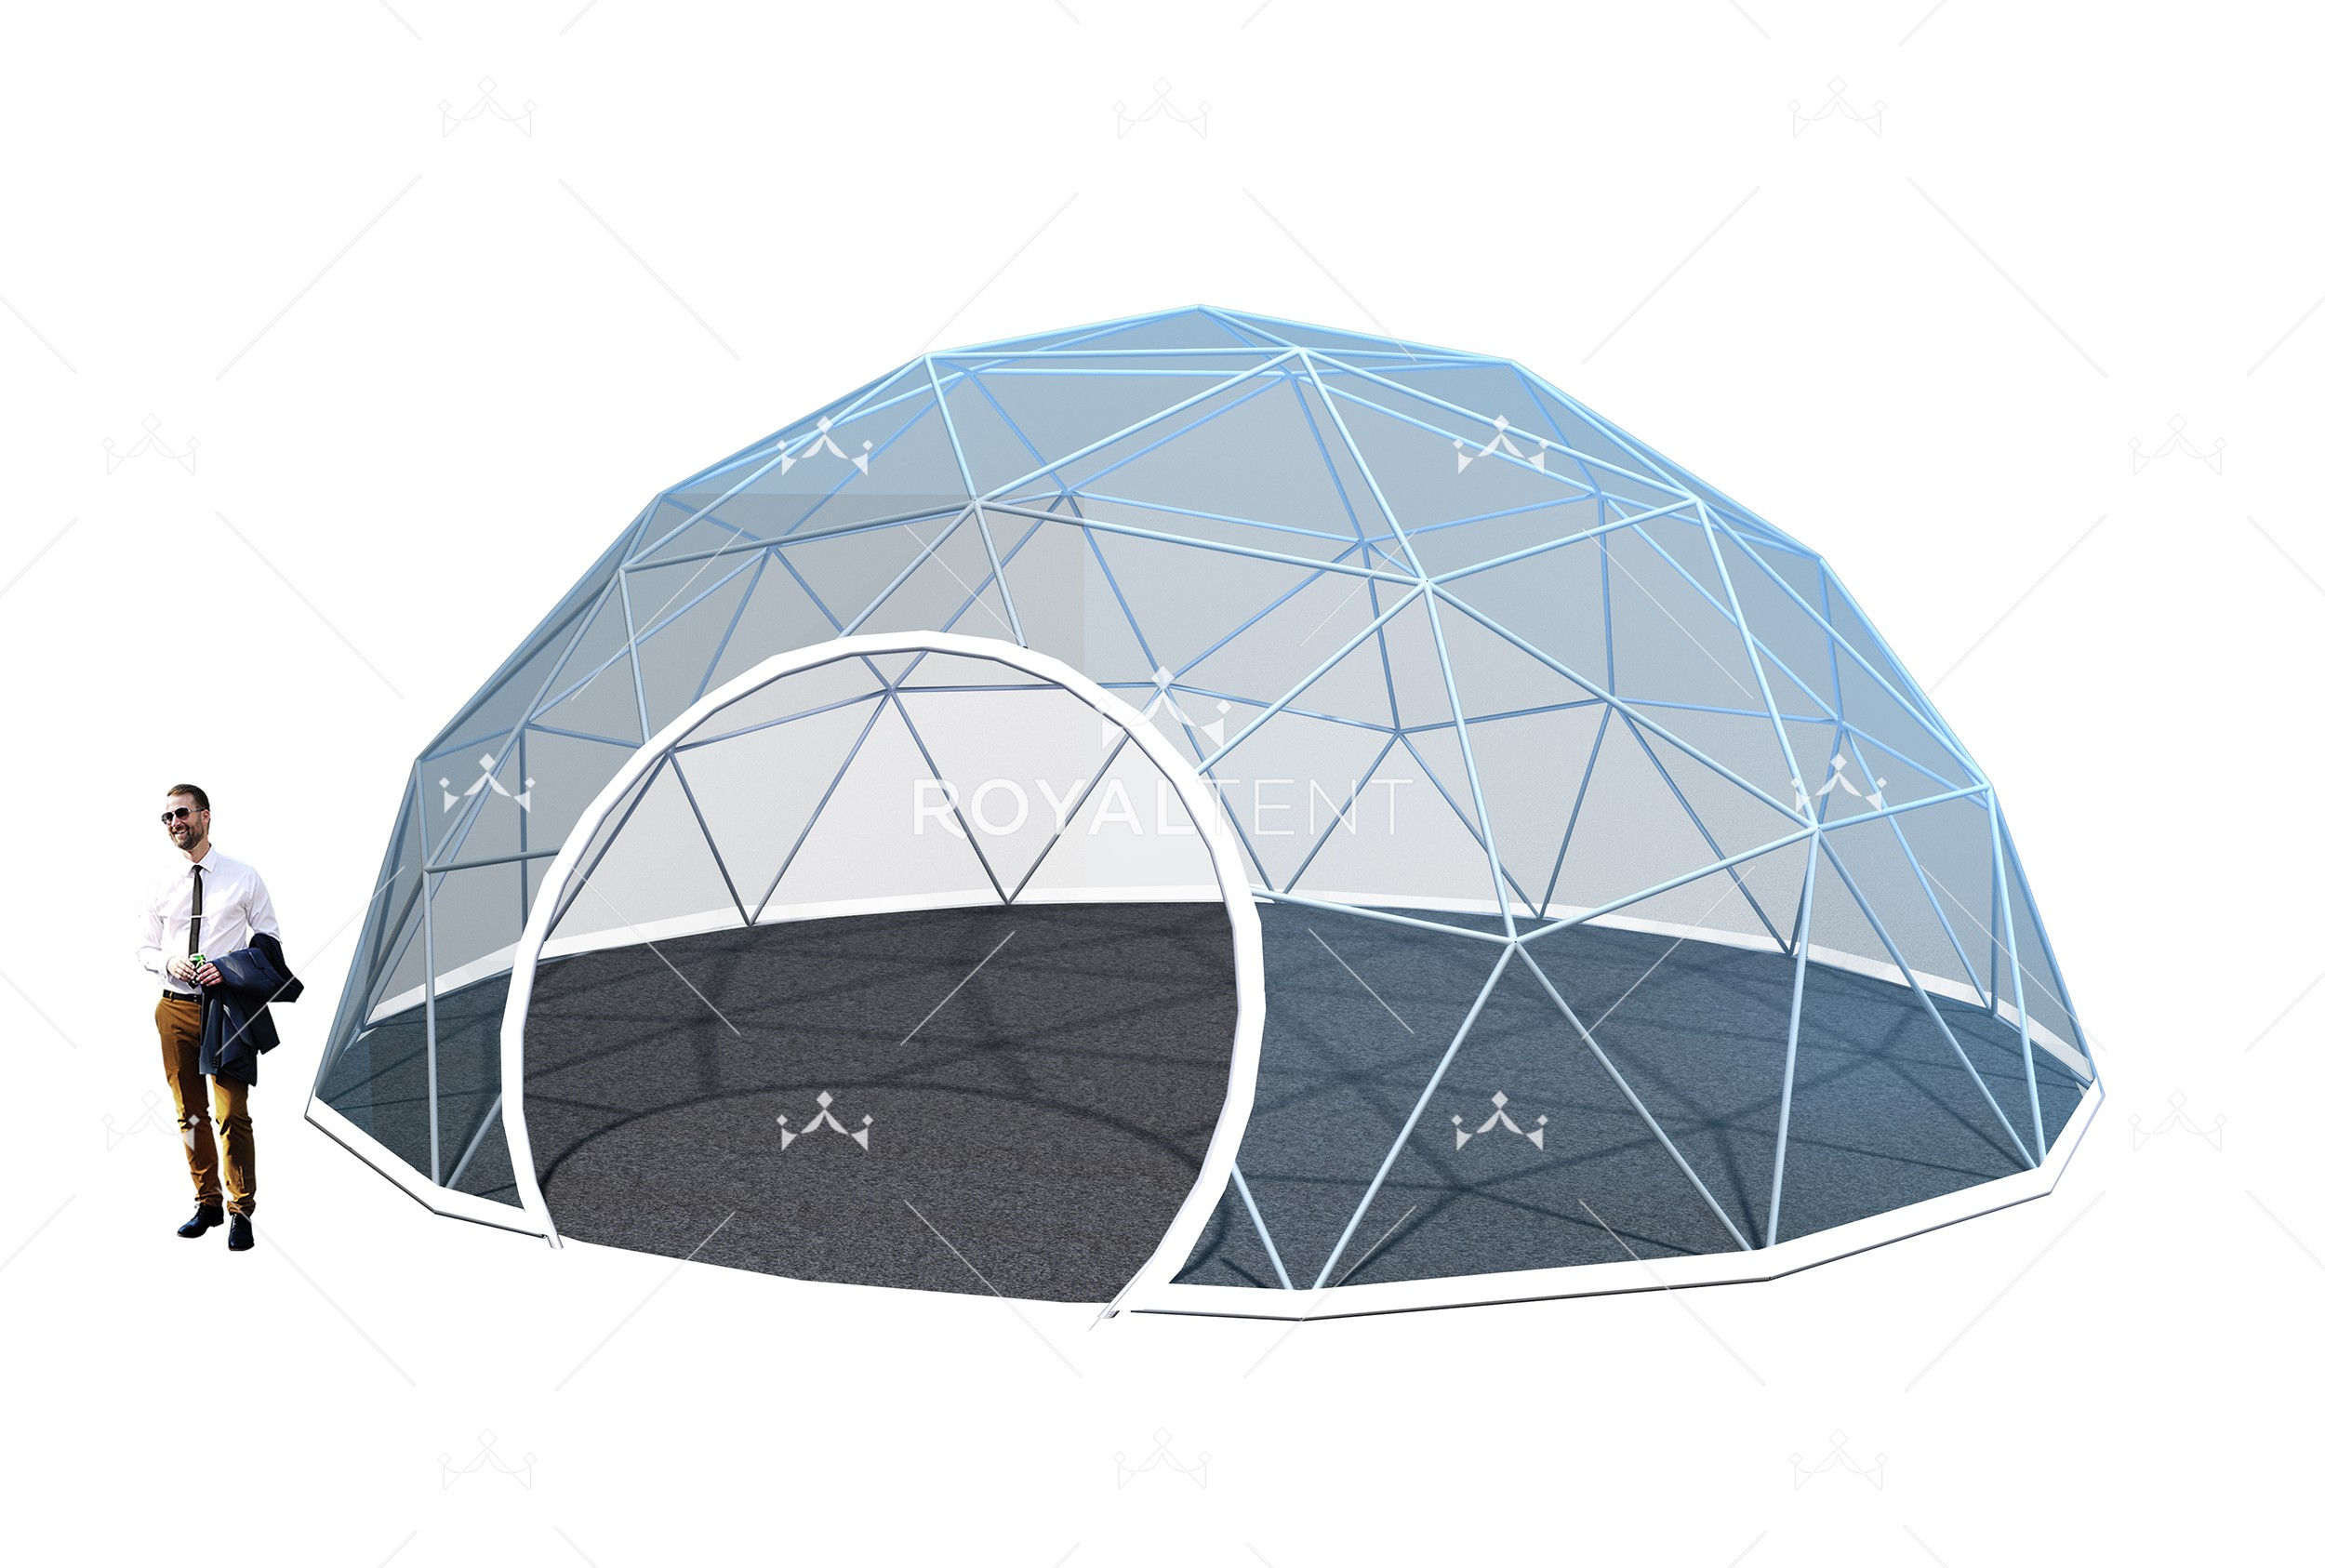 https://royaltent.me/houses_images/tent4_200111100337.jpg